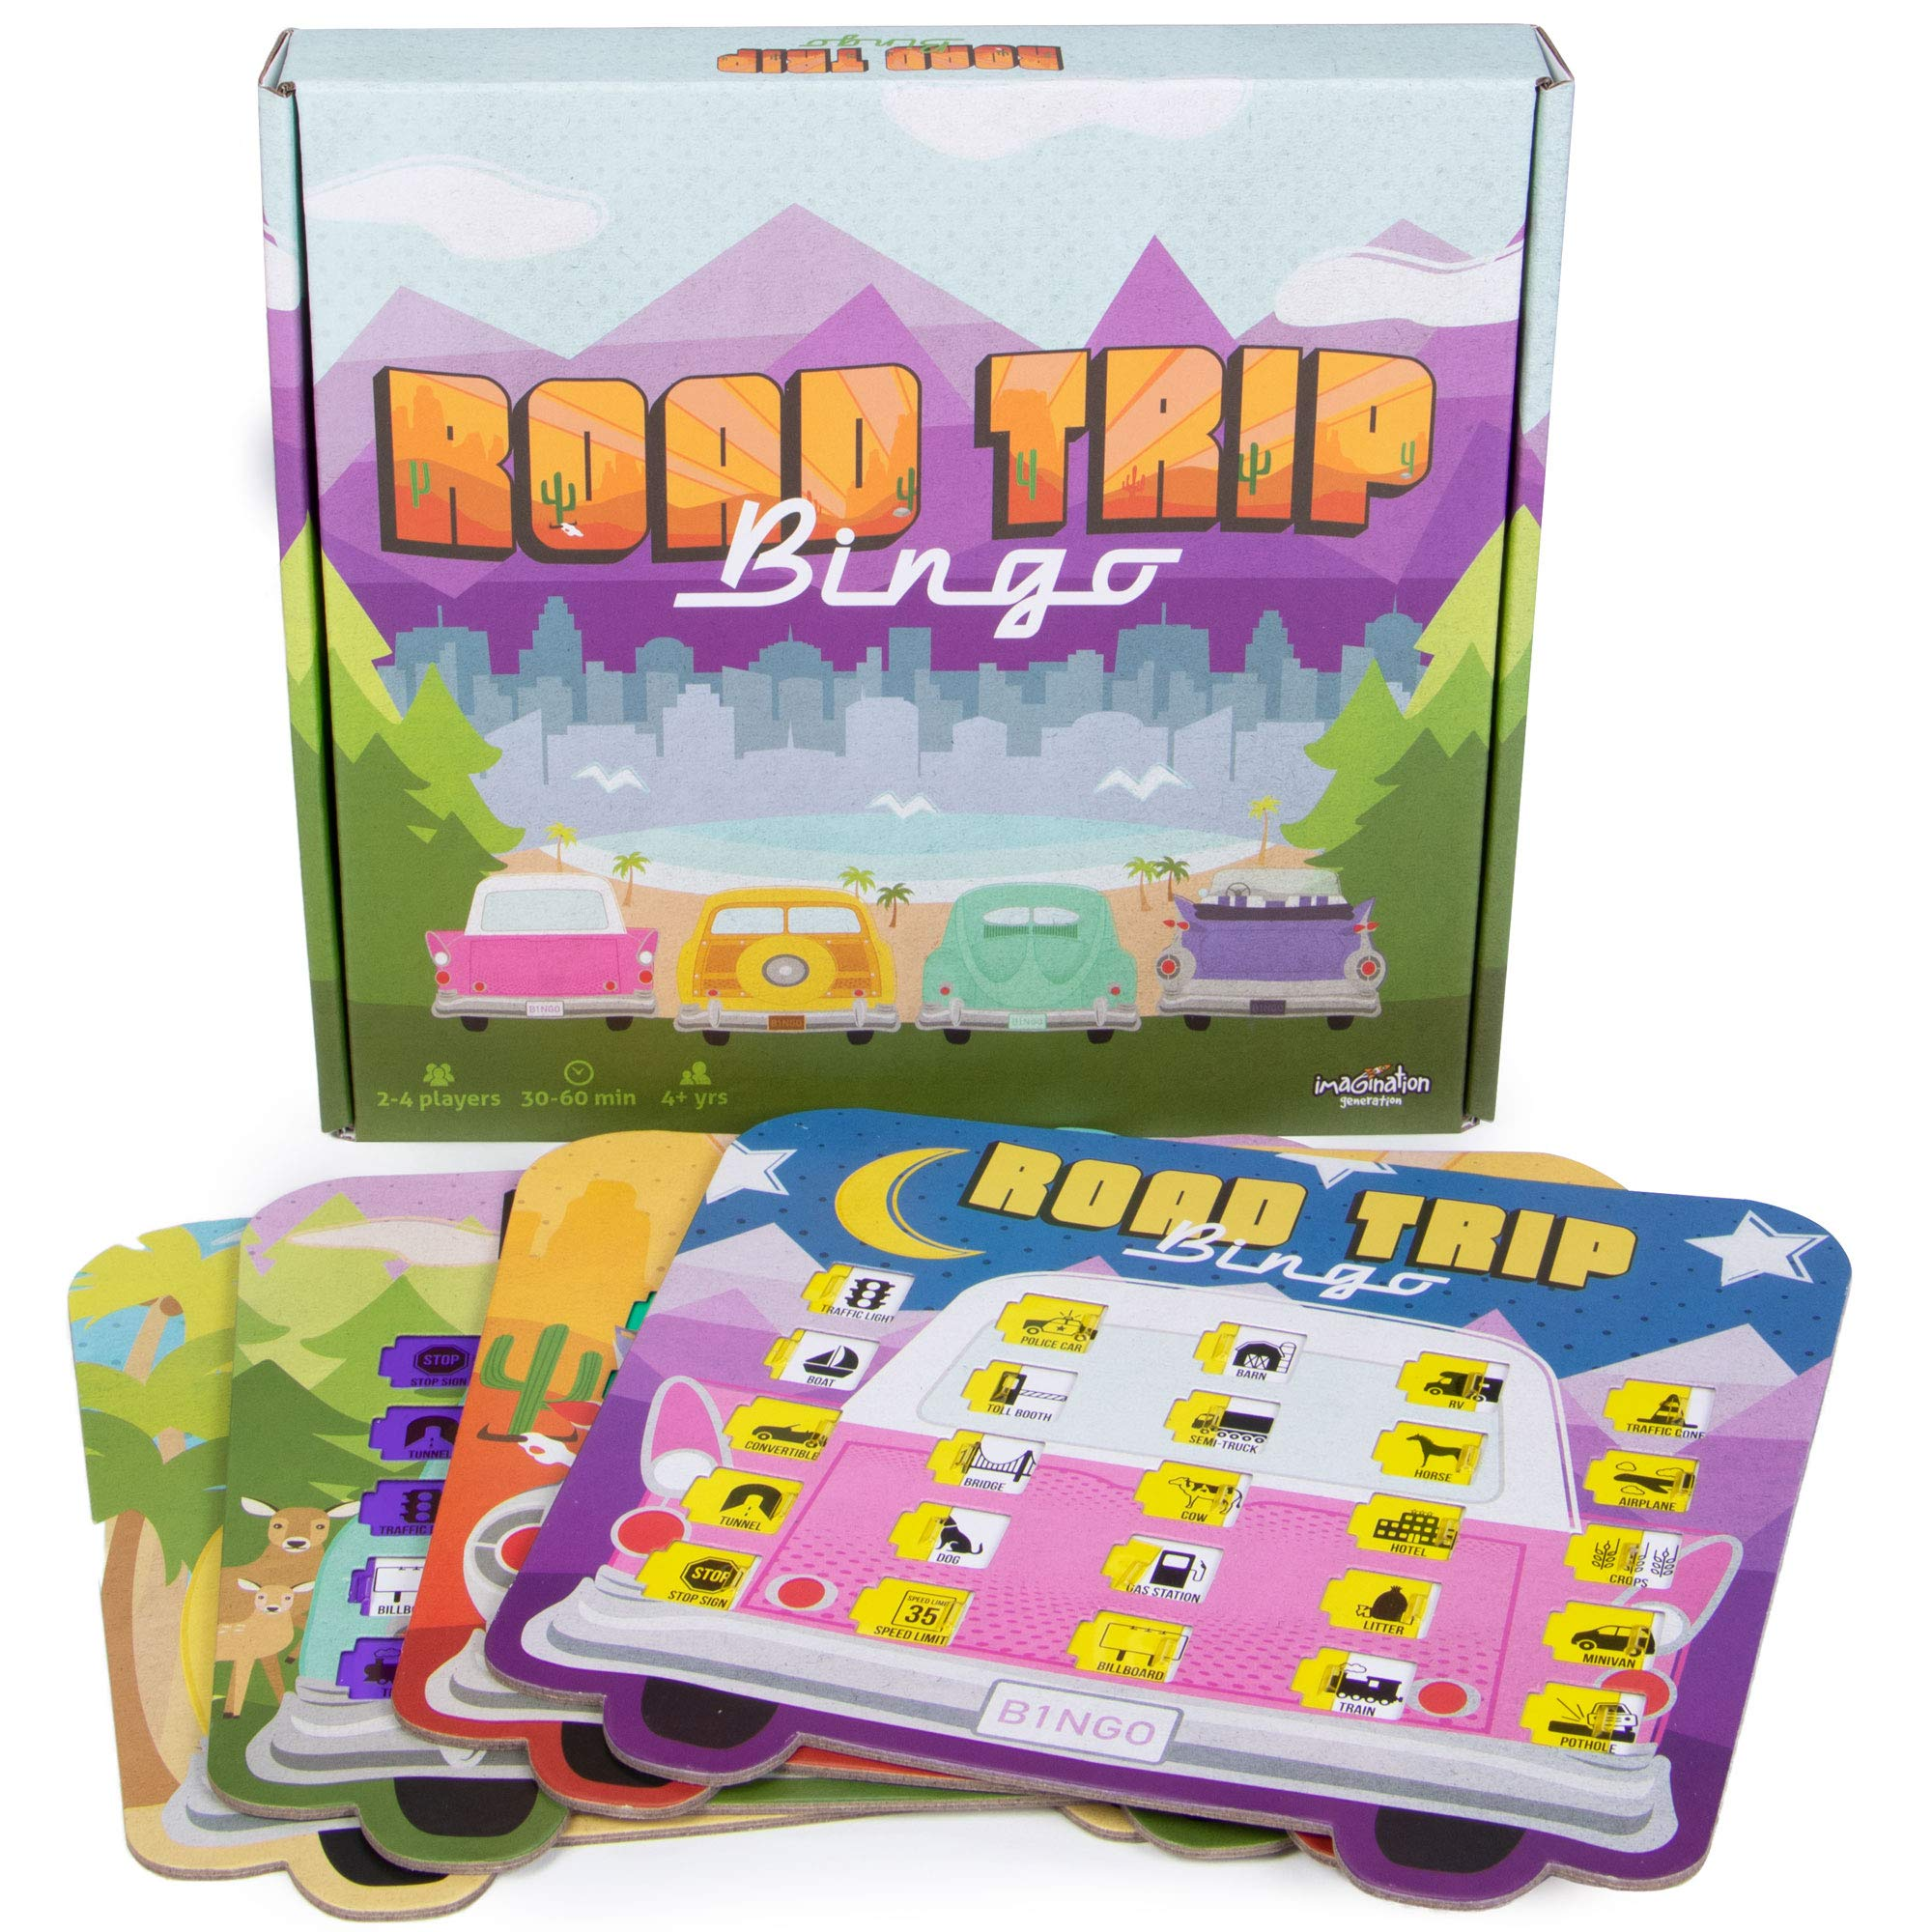 Road Trip Bingo - Road Trip Travelling Bingo Game for Families and Kids on Road Trips and Vacations - 4 Compact Bingo Boards for Easy Travel by Imagination Generation